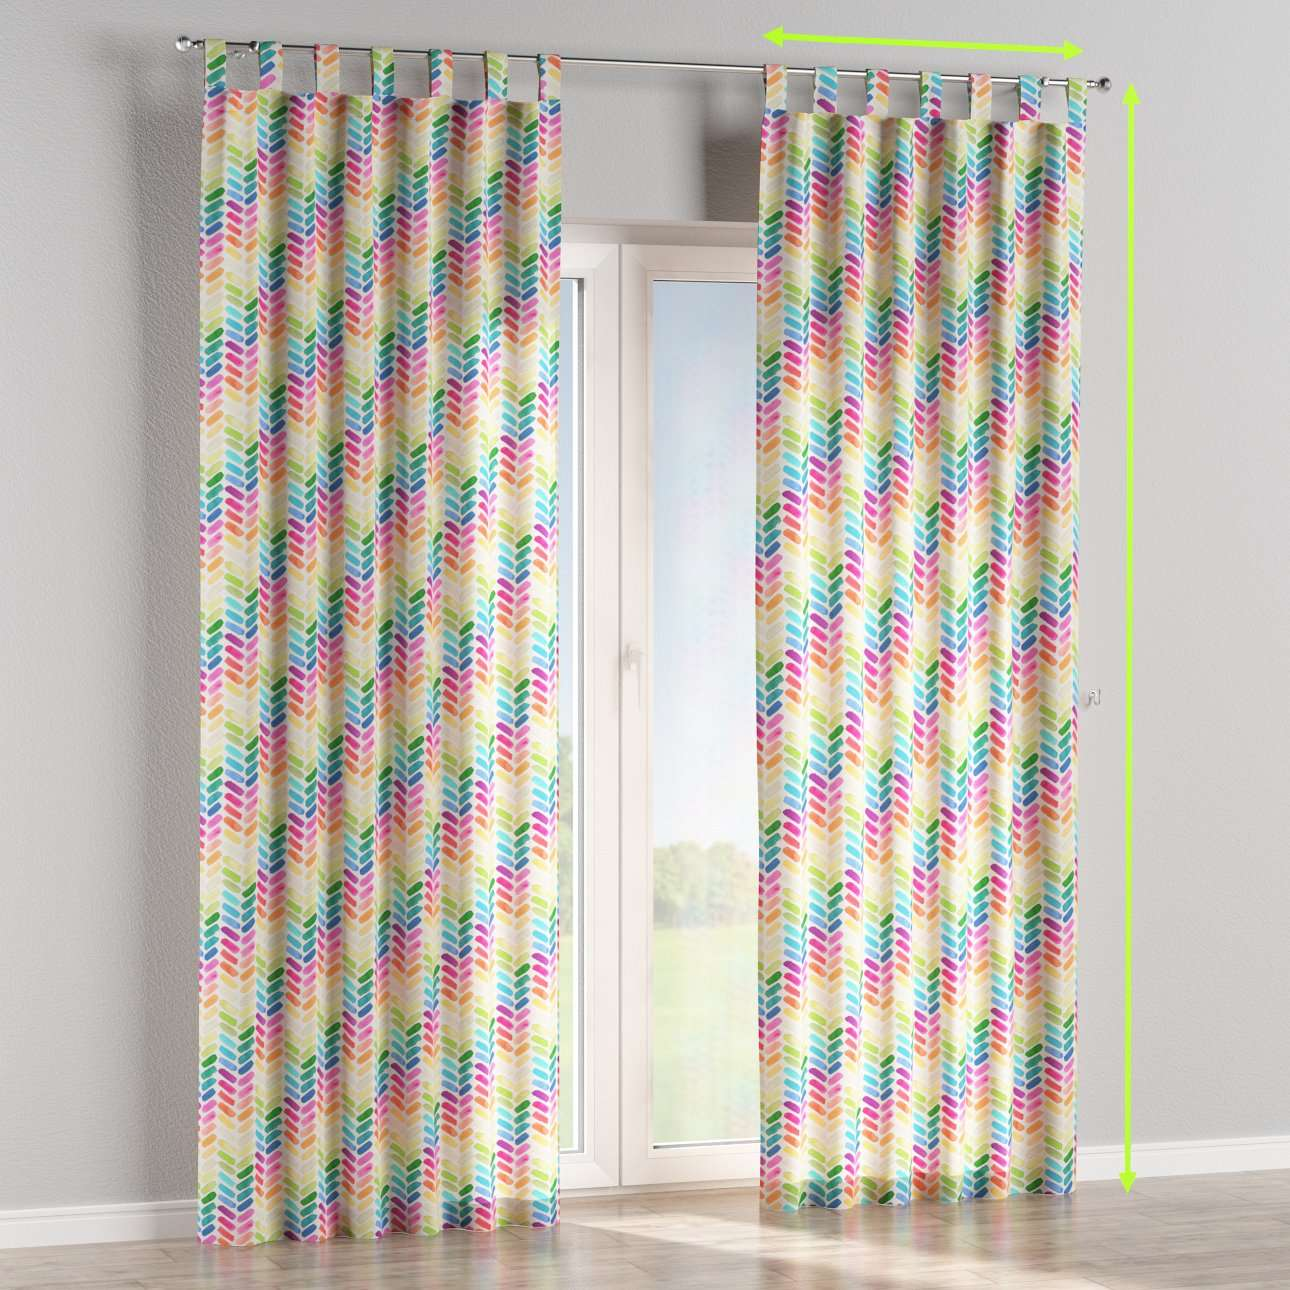 Tab top lined curtains in collection New Art, fabric: 140-25